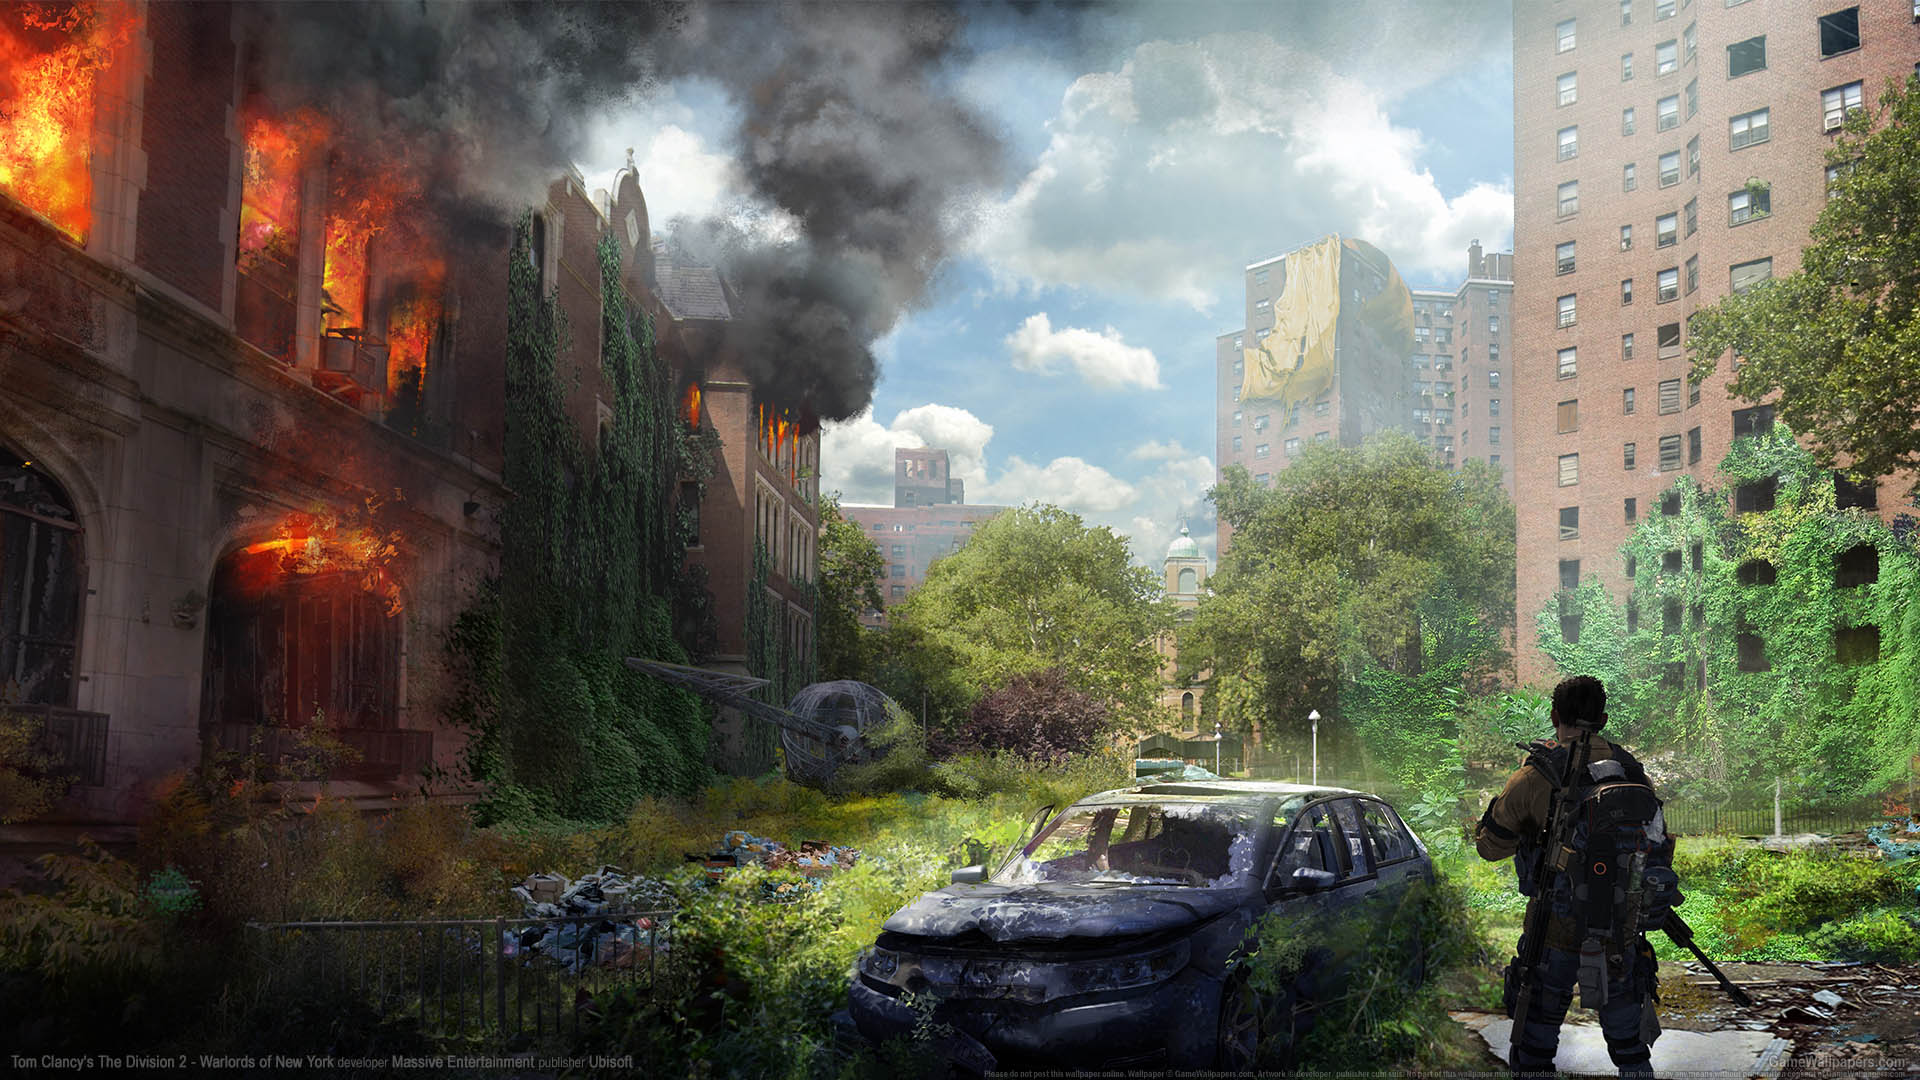 Tom Clancy's The Division 2 - Warlords of New York fond d'écran 03 1920x1080